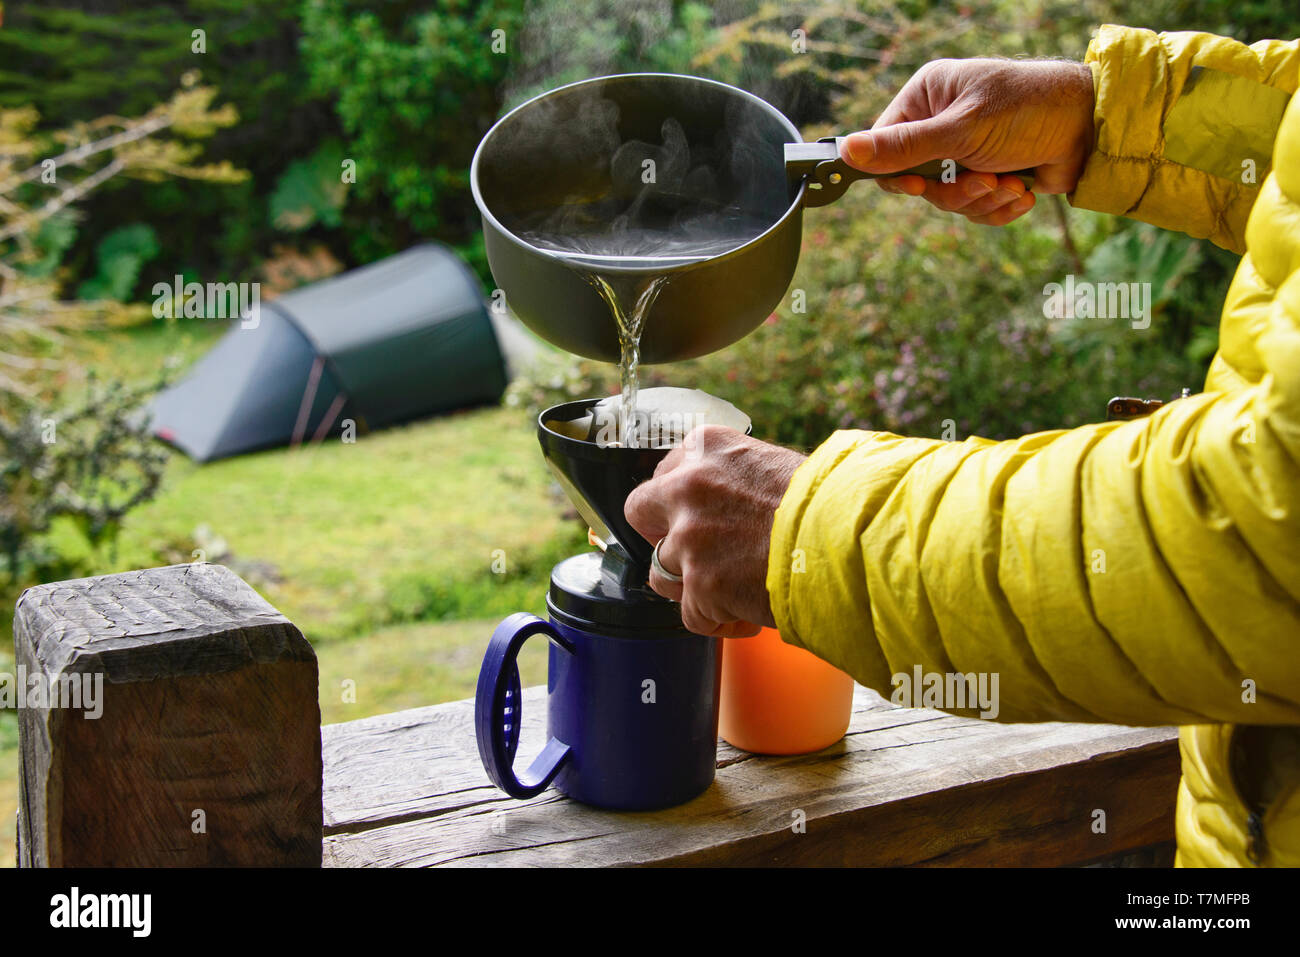 Brewing coffee at the campsite at Pumalin National Park, Patagonia, Region de los Lagos, Chile - Stock Image